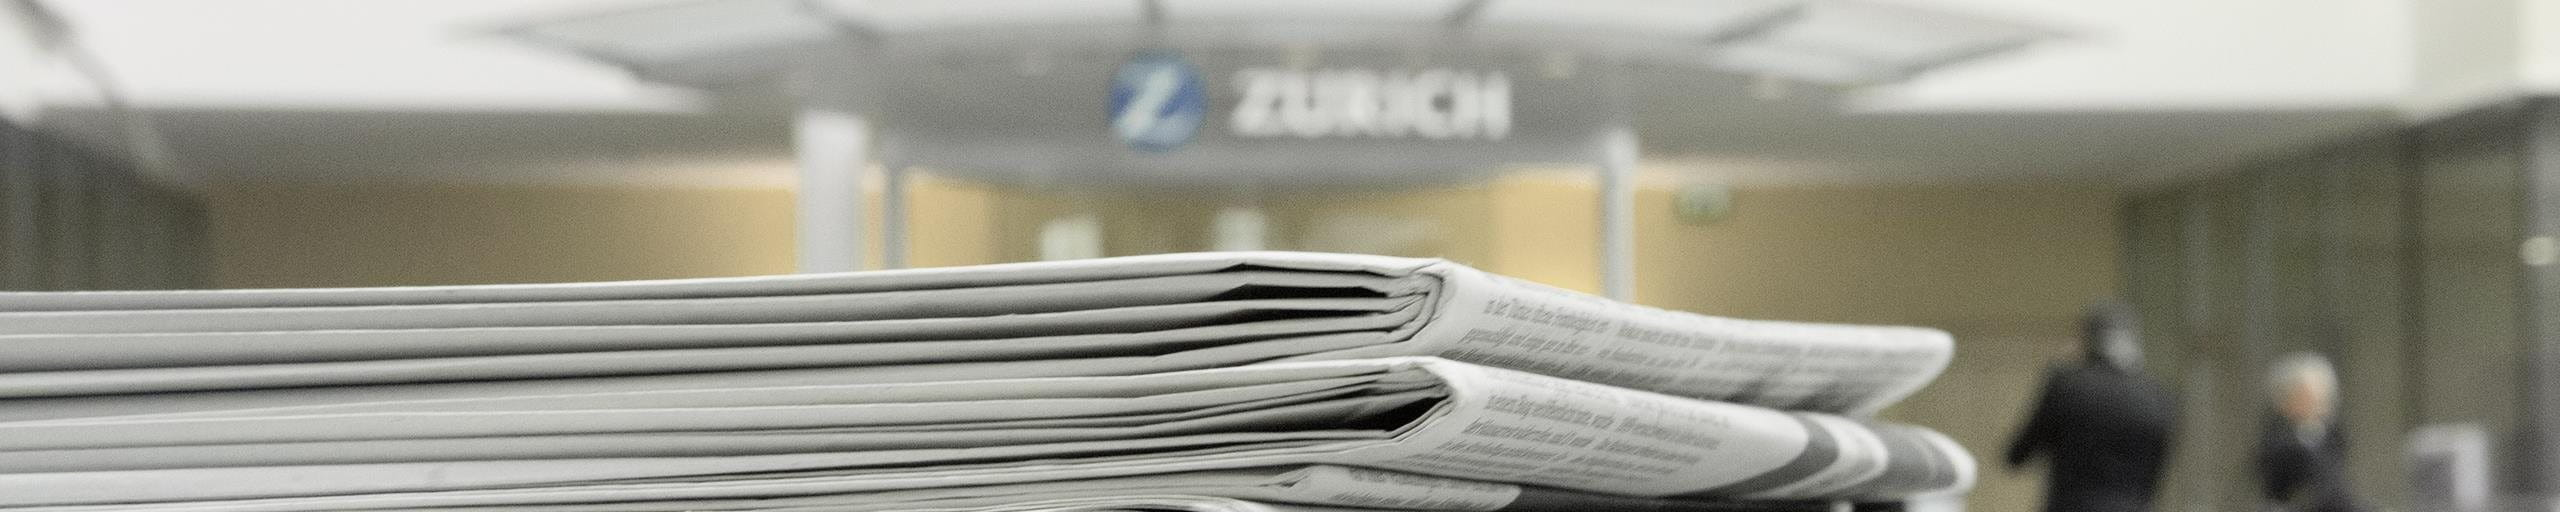 A stack of news papers in a Zurich building.